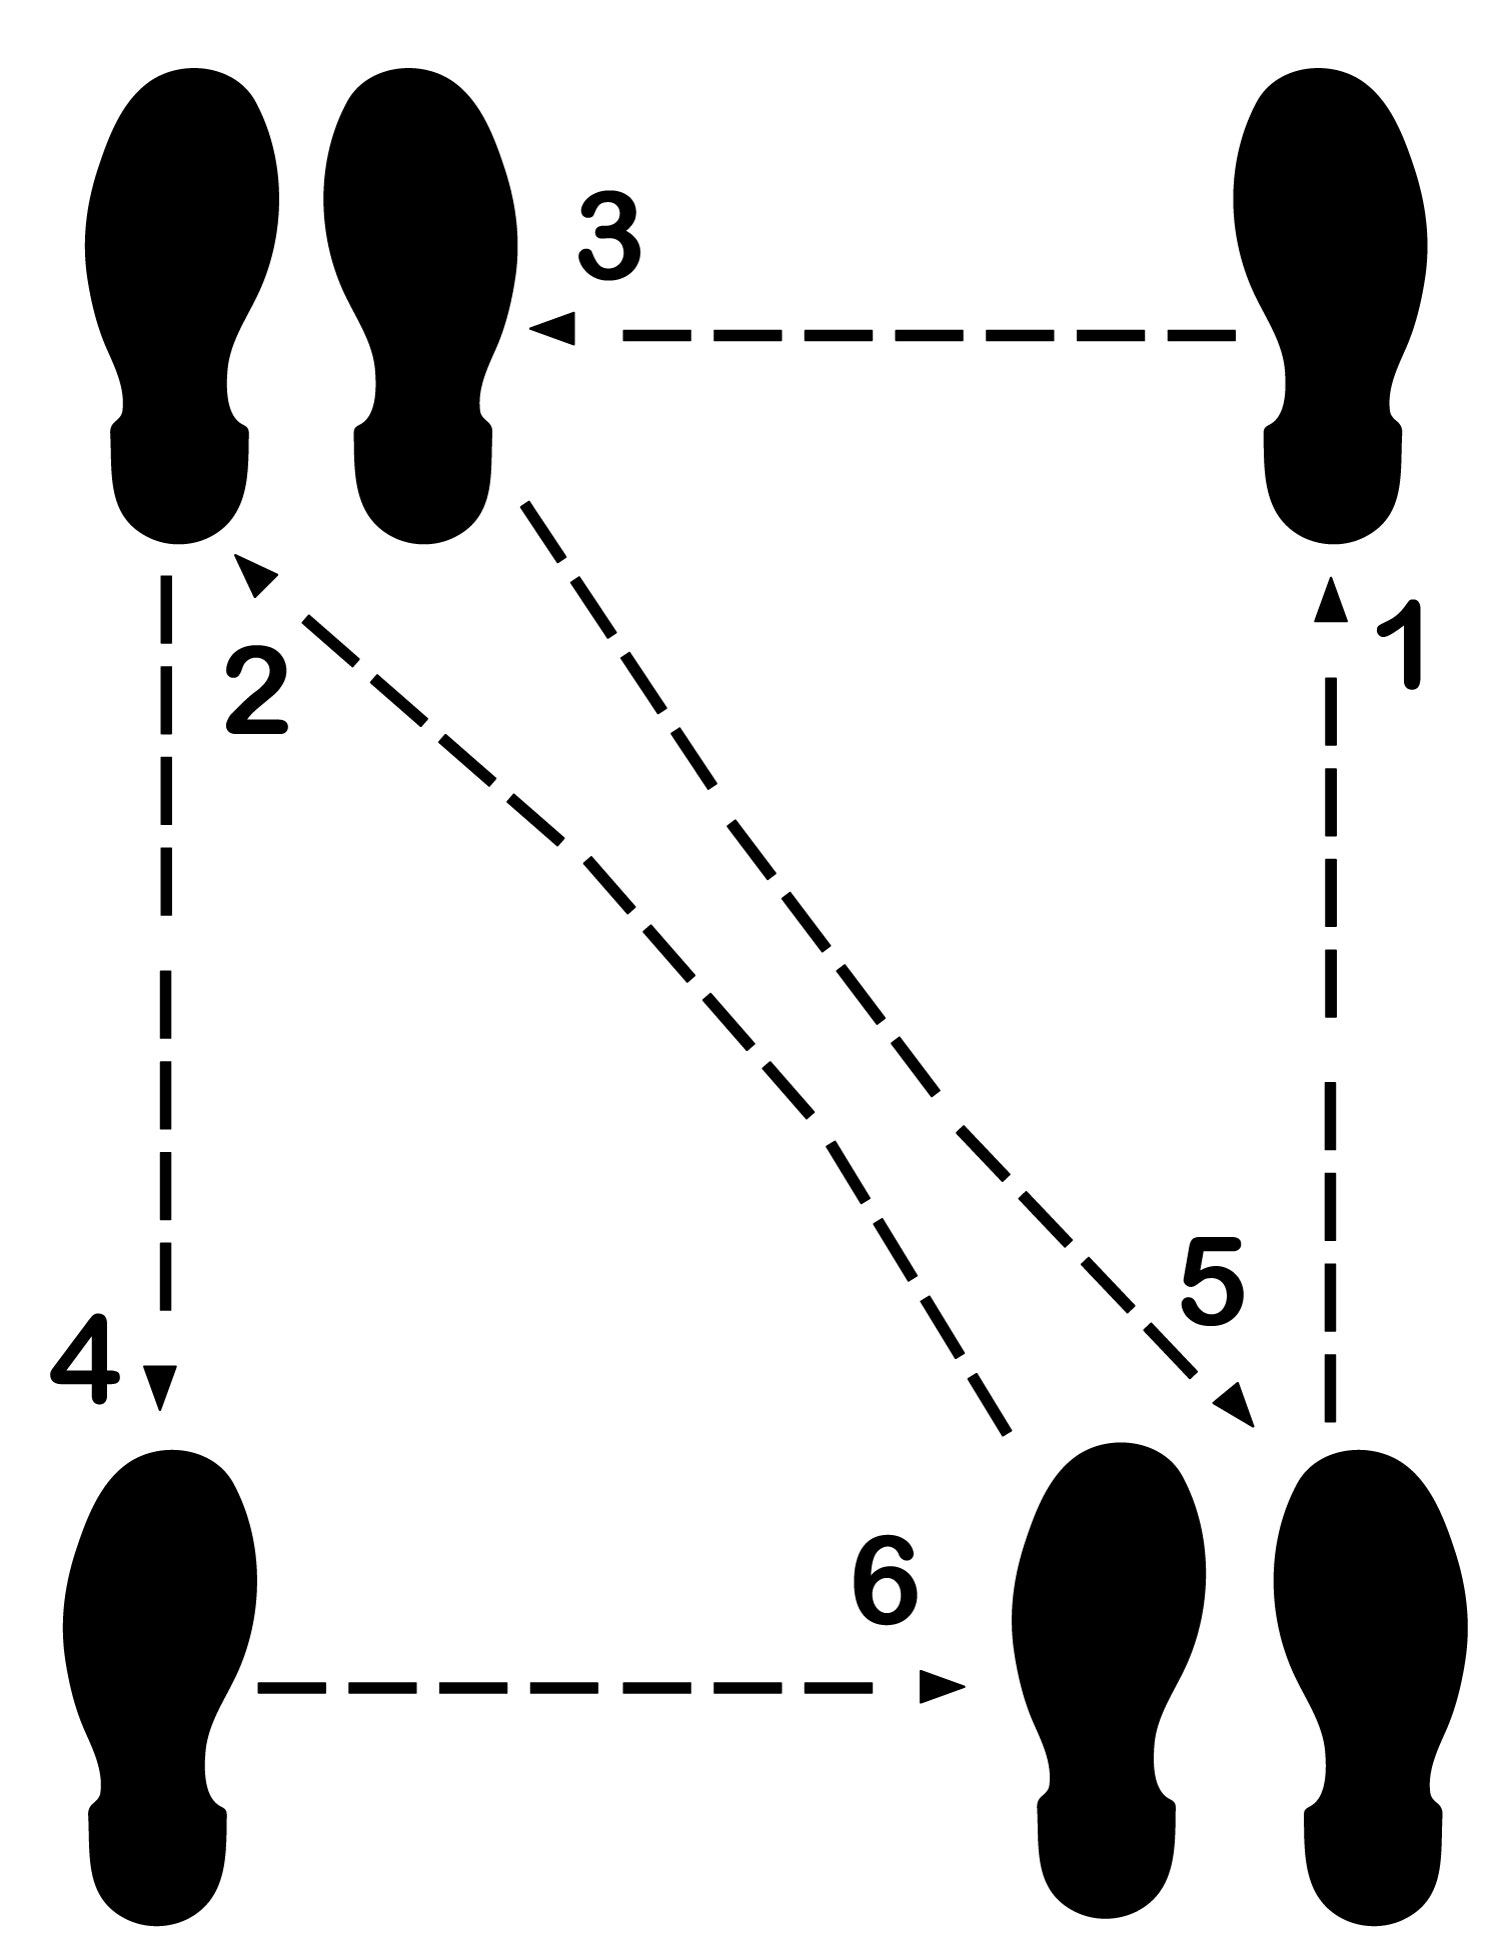 Dance Diagram Supplemental Waltz M on Waltz Dance Steps Diagram